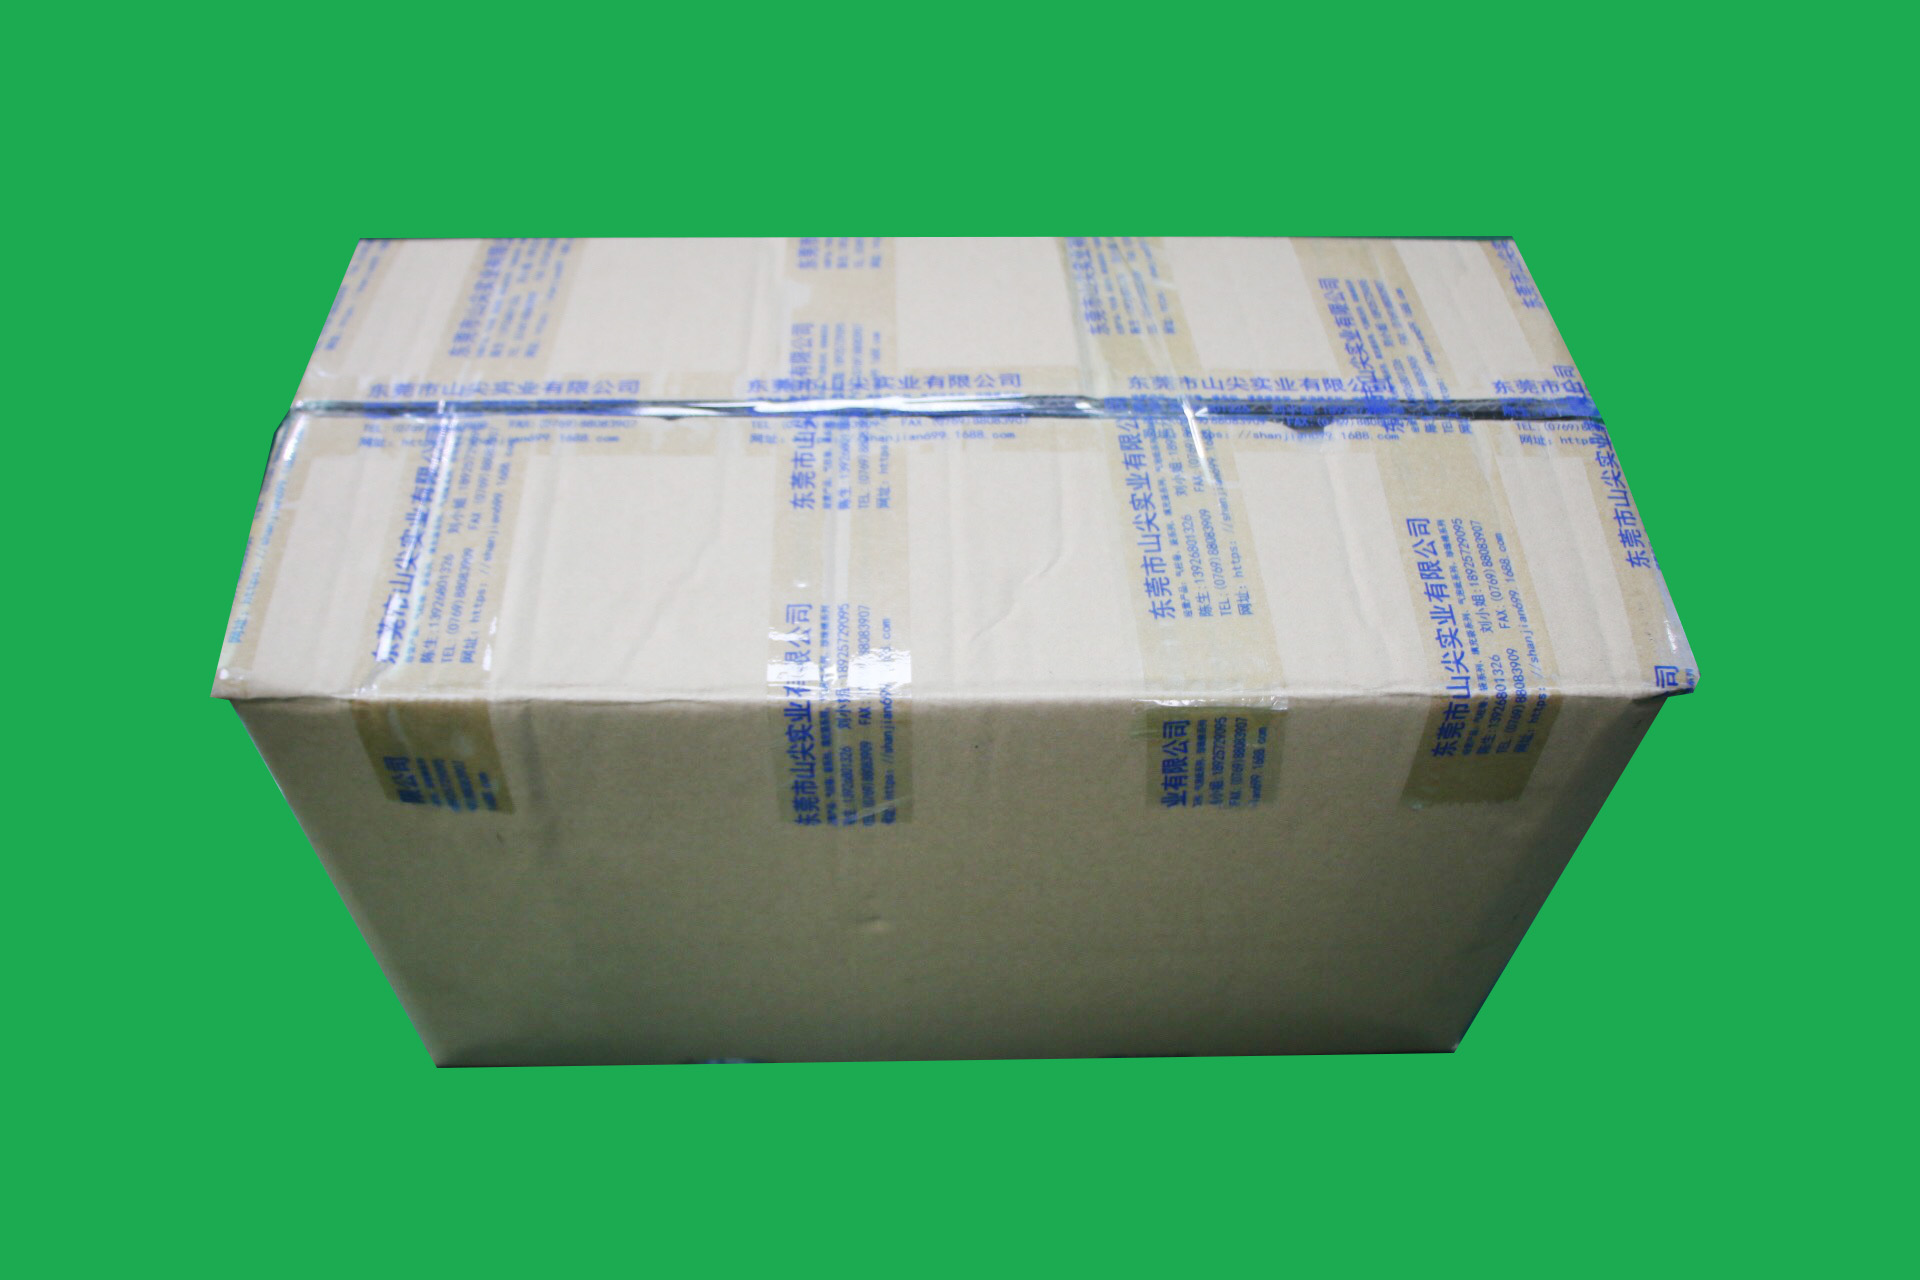 Sunshinepack New air pillow manufacturers india Supply for package-6